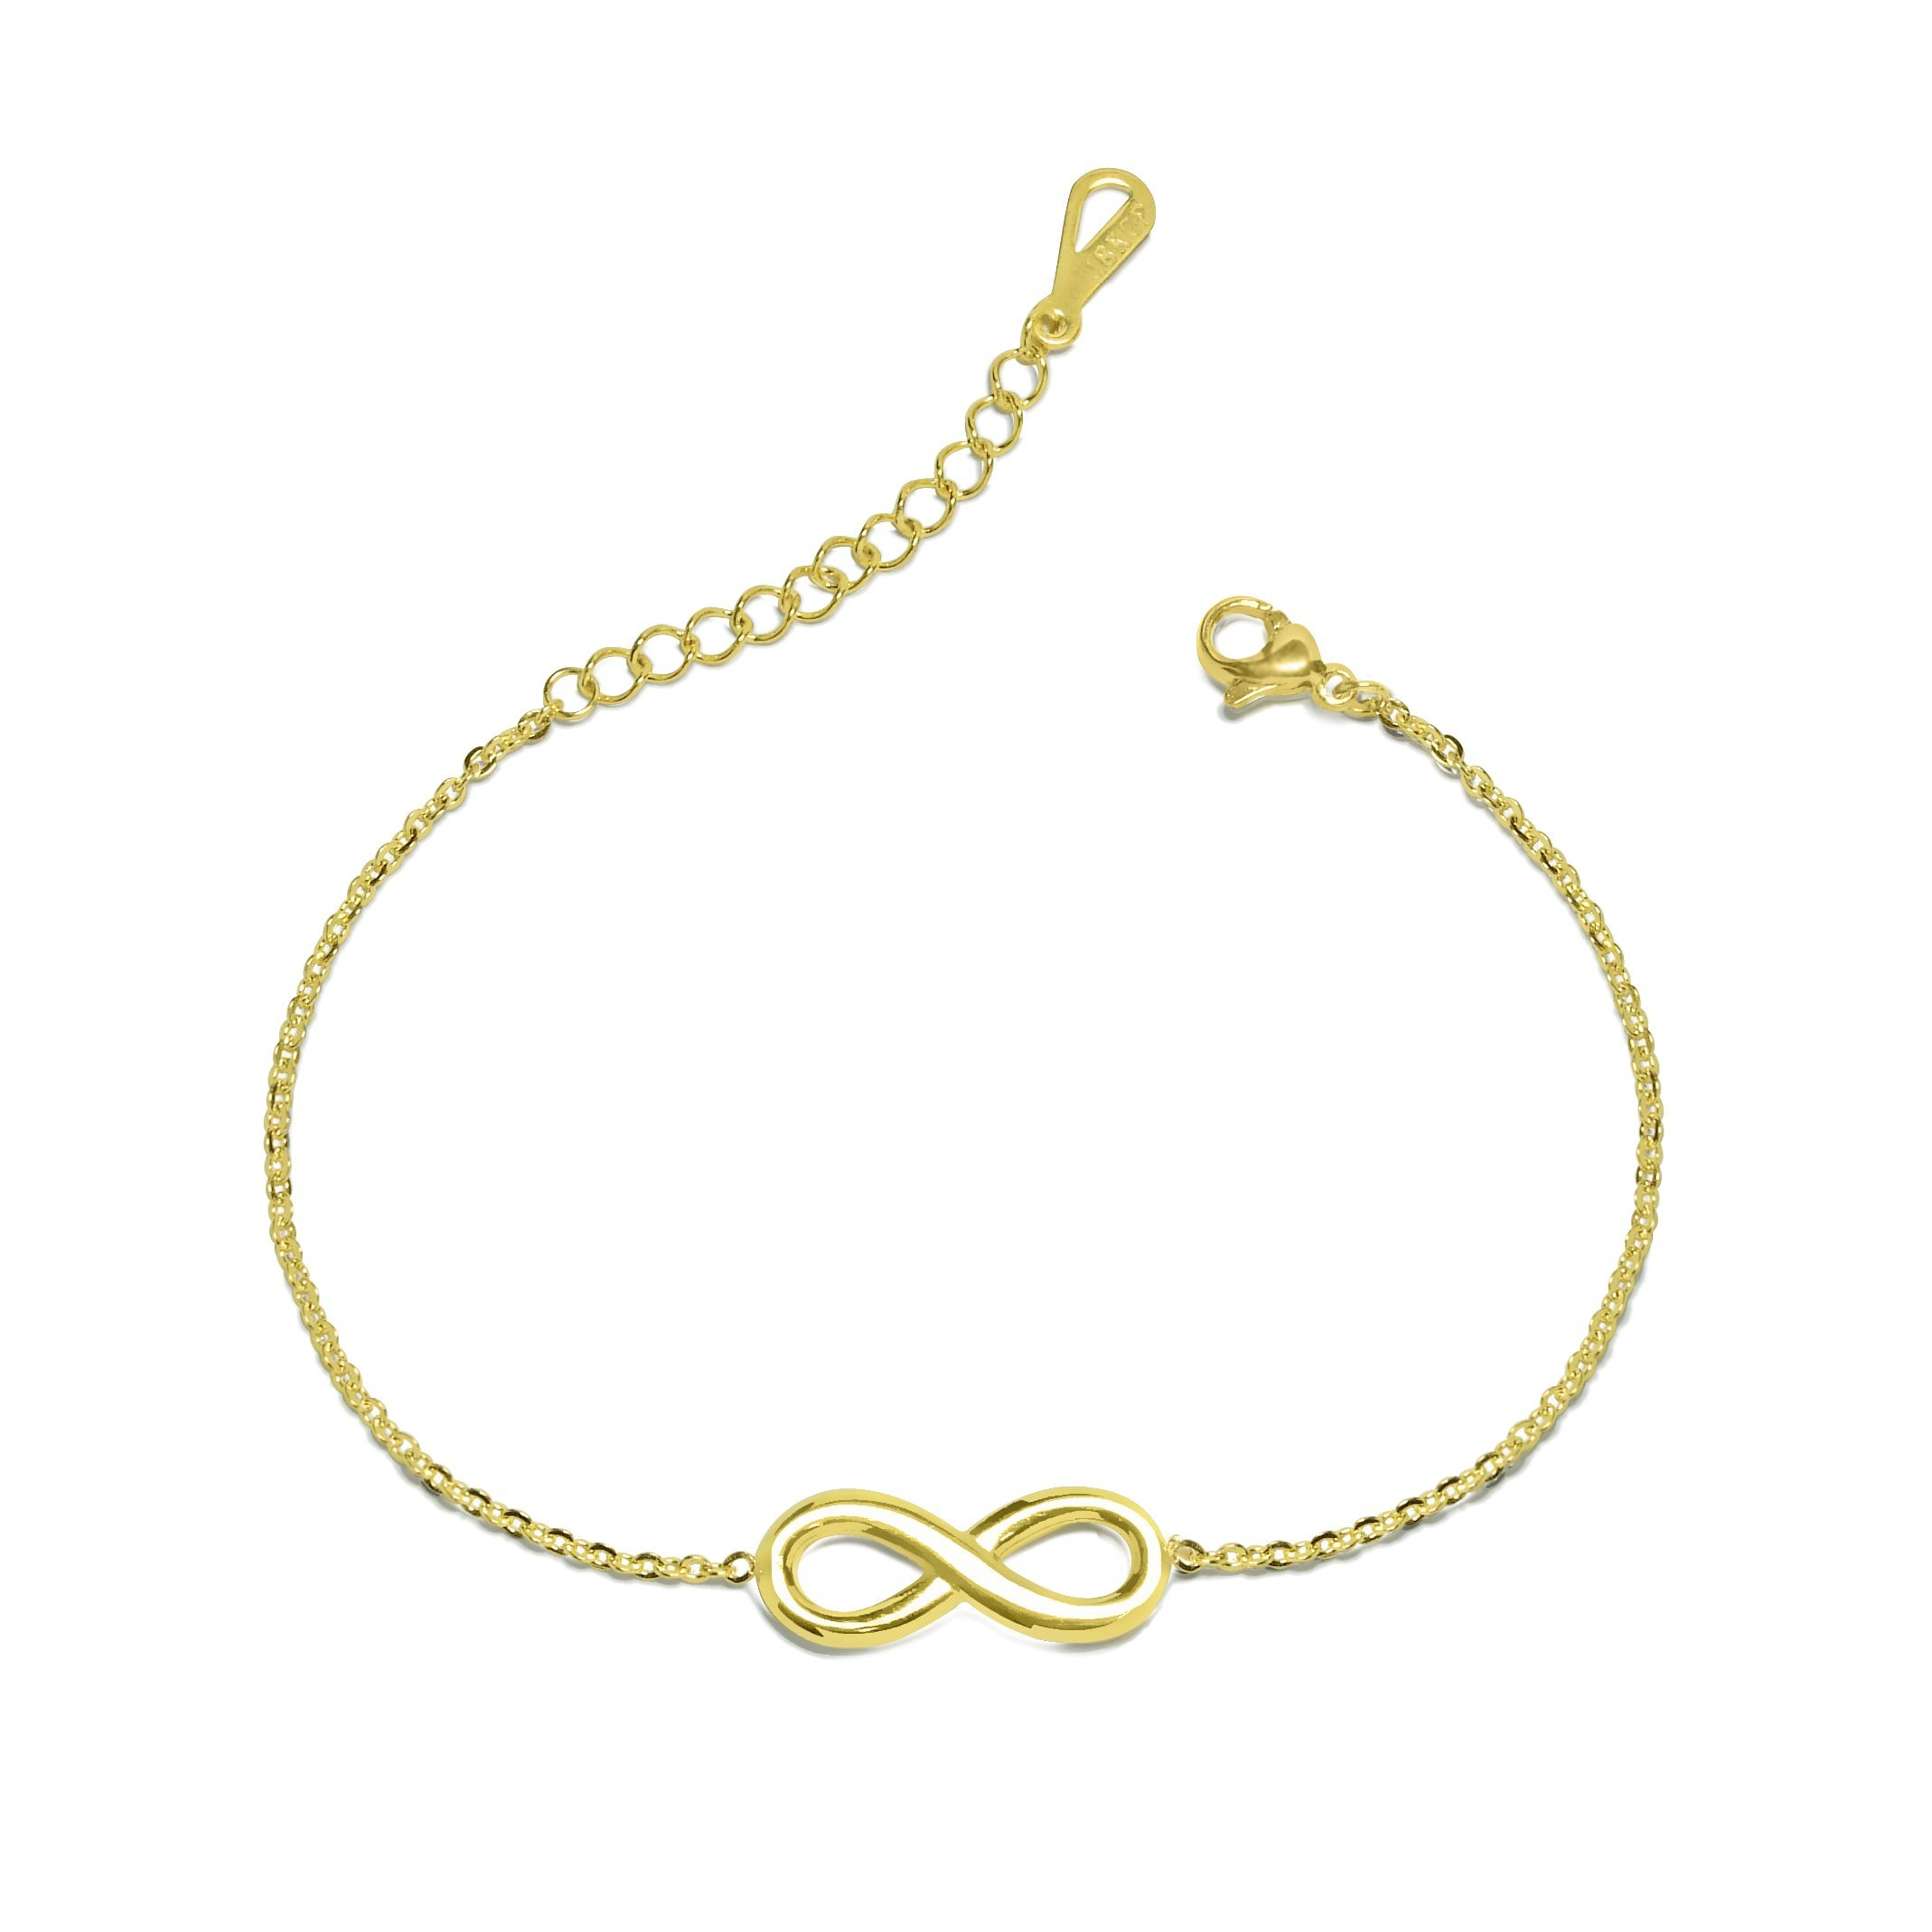 statement product diamond infinity yellow fdaw r il gold fullxfull jewels fancy j bracelet link